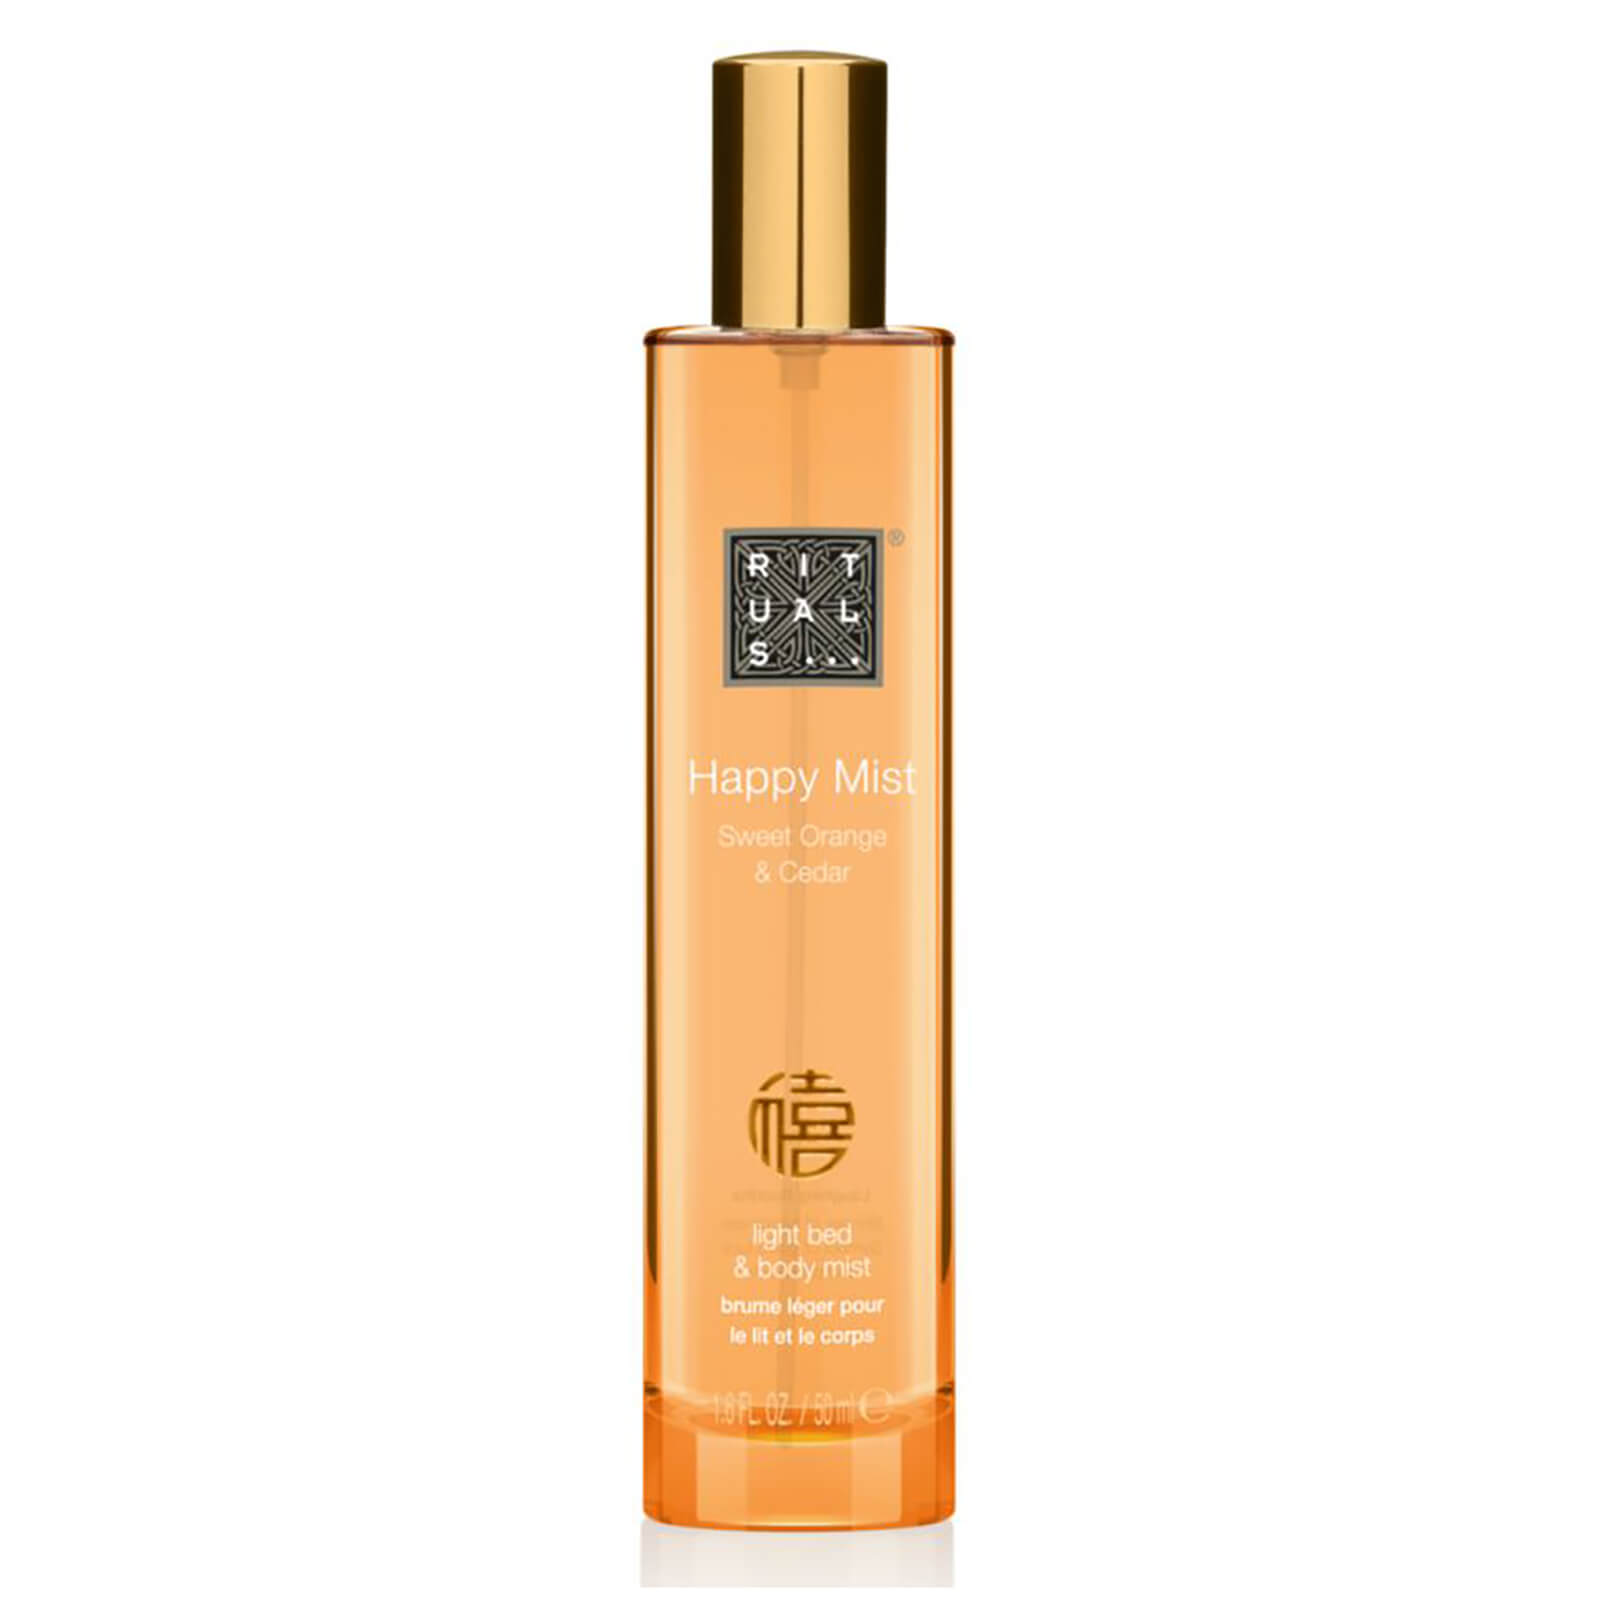 Rituals Happy Mist Body Perfume 50ml Free Shipping Lookfantastic